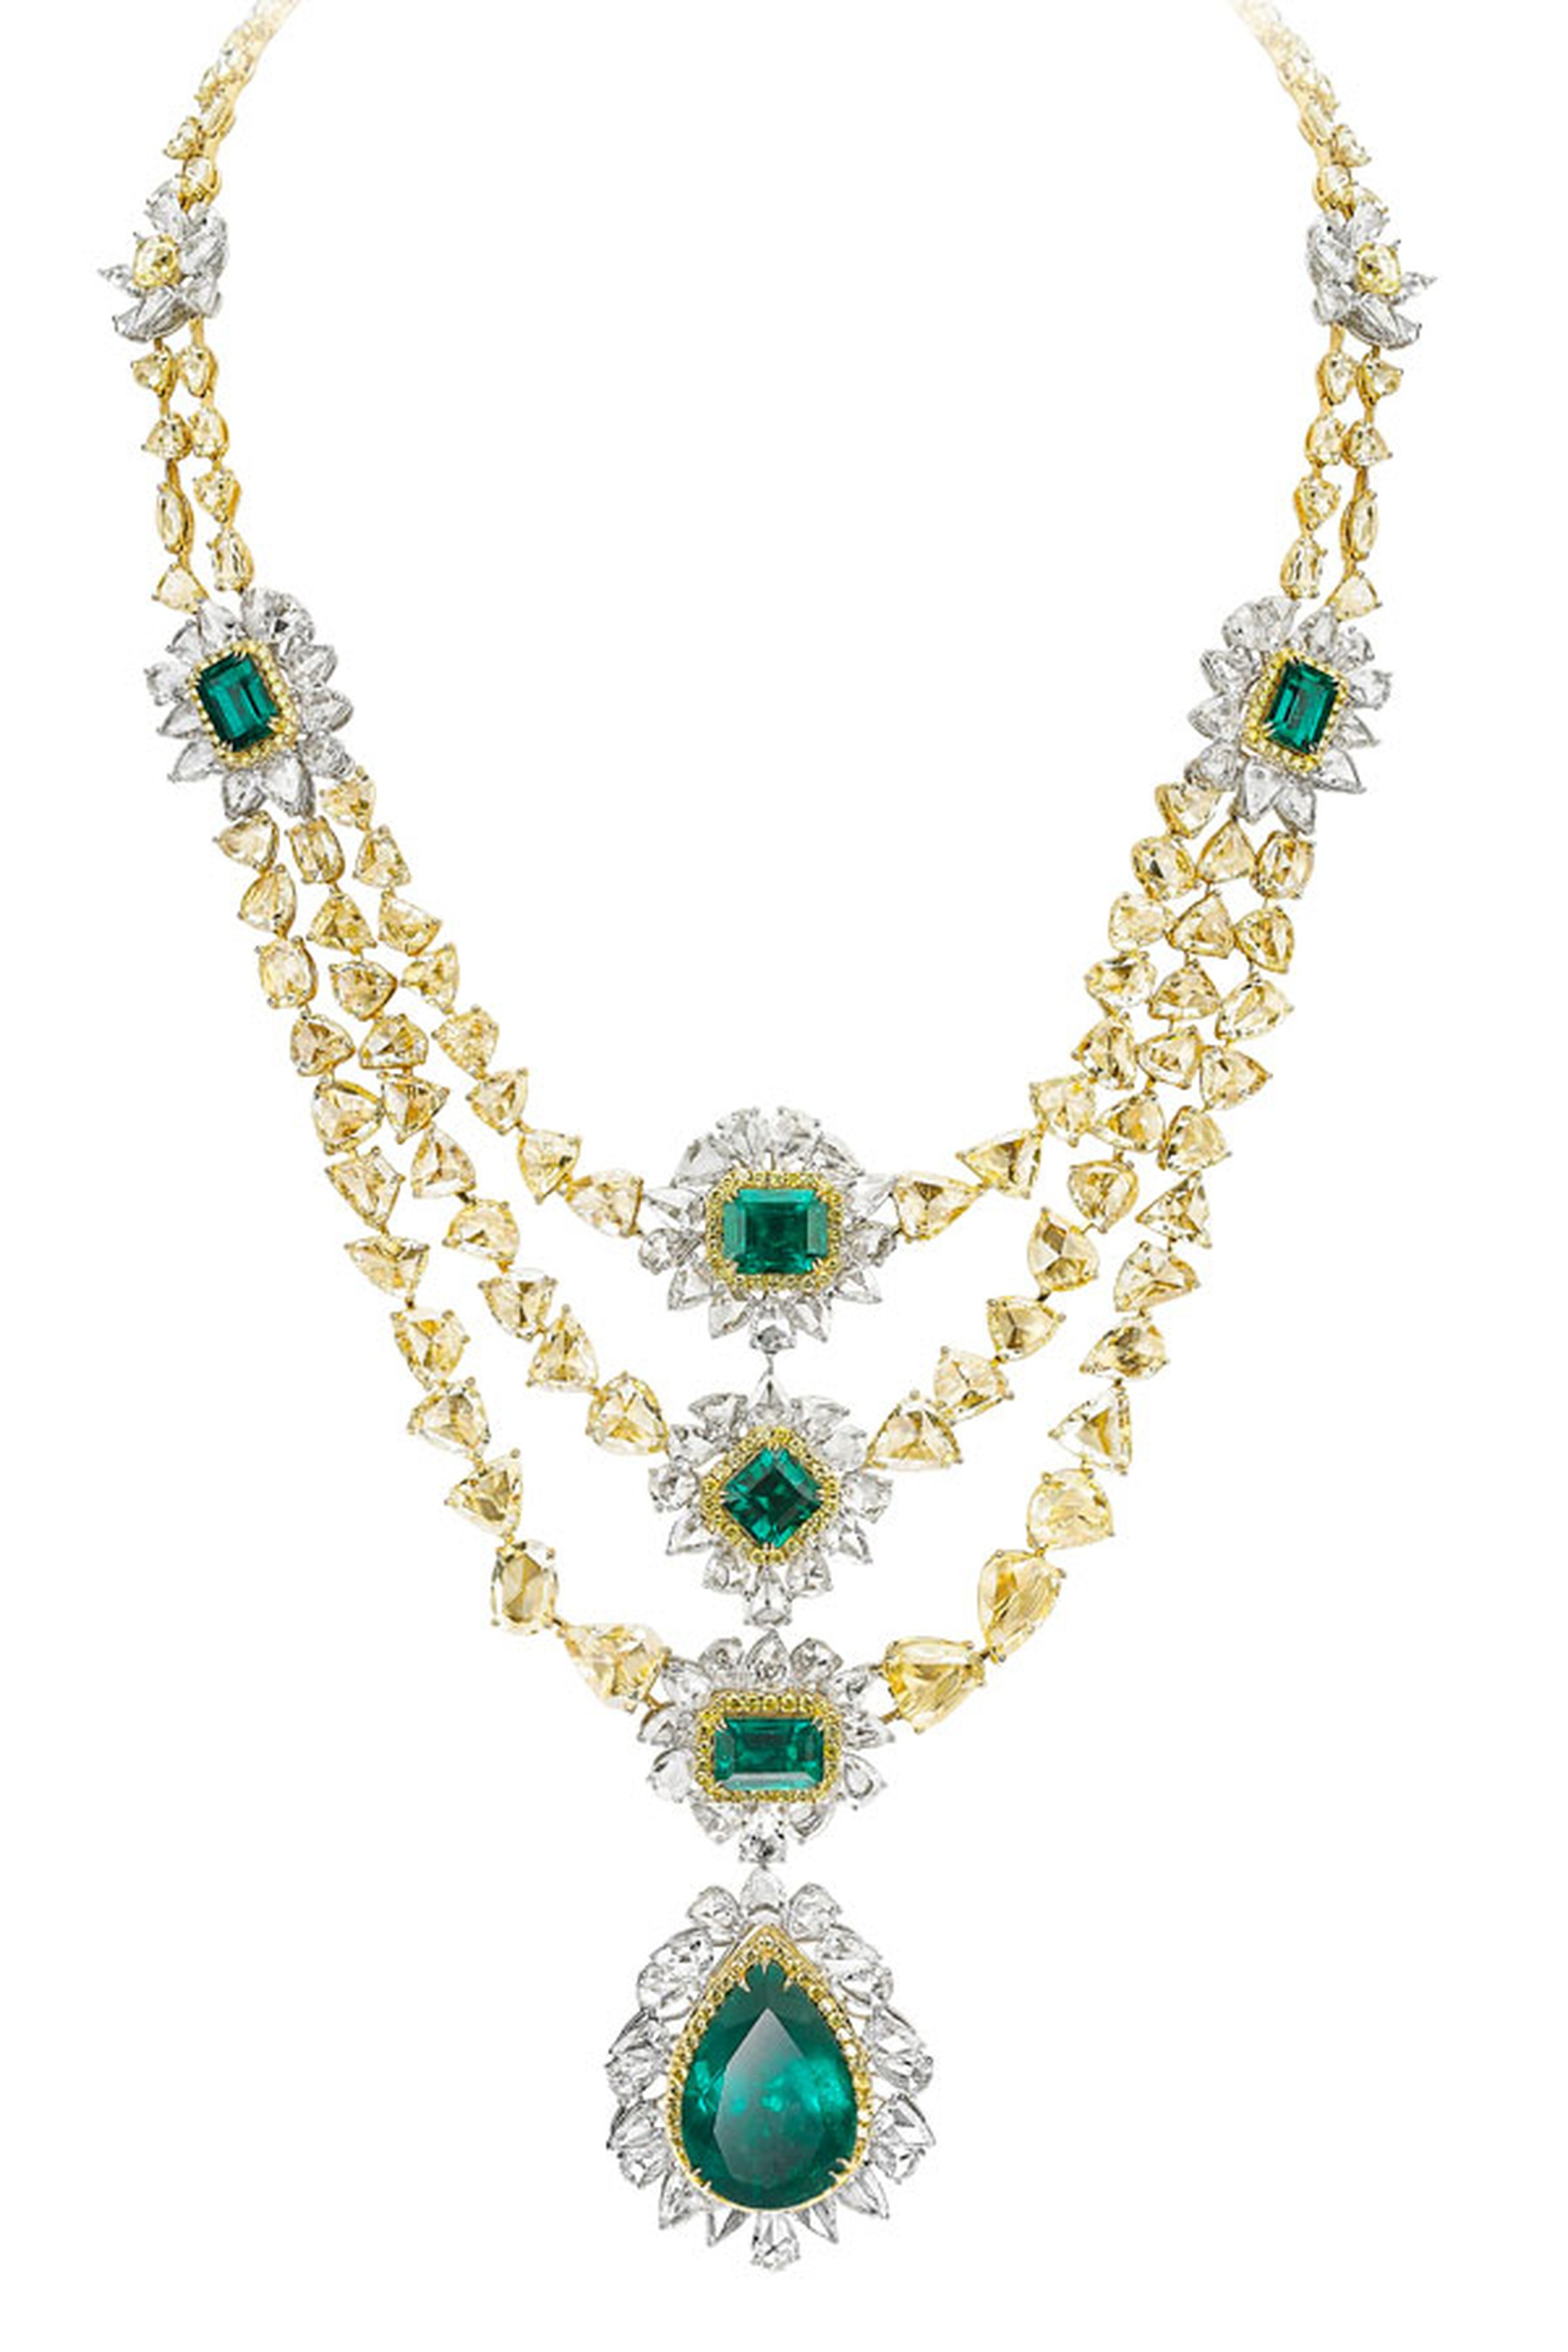 Avakian-yellow-diamond-and-emerald-necklace.jpg